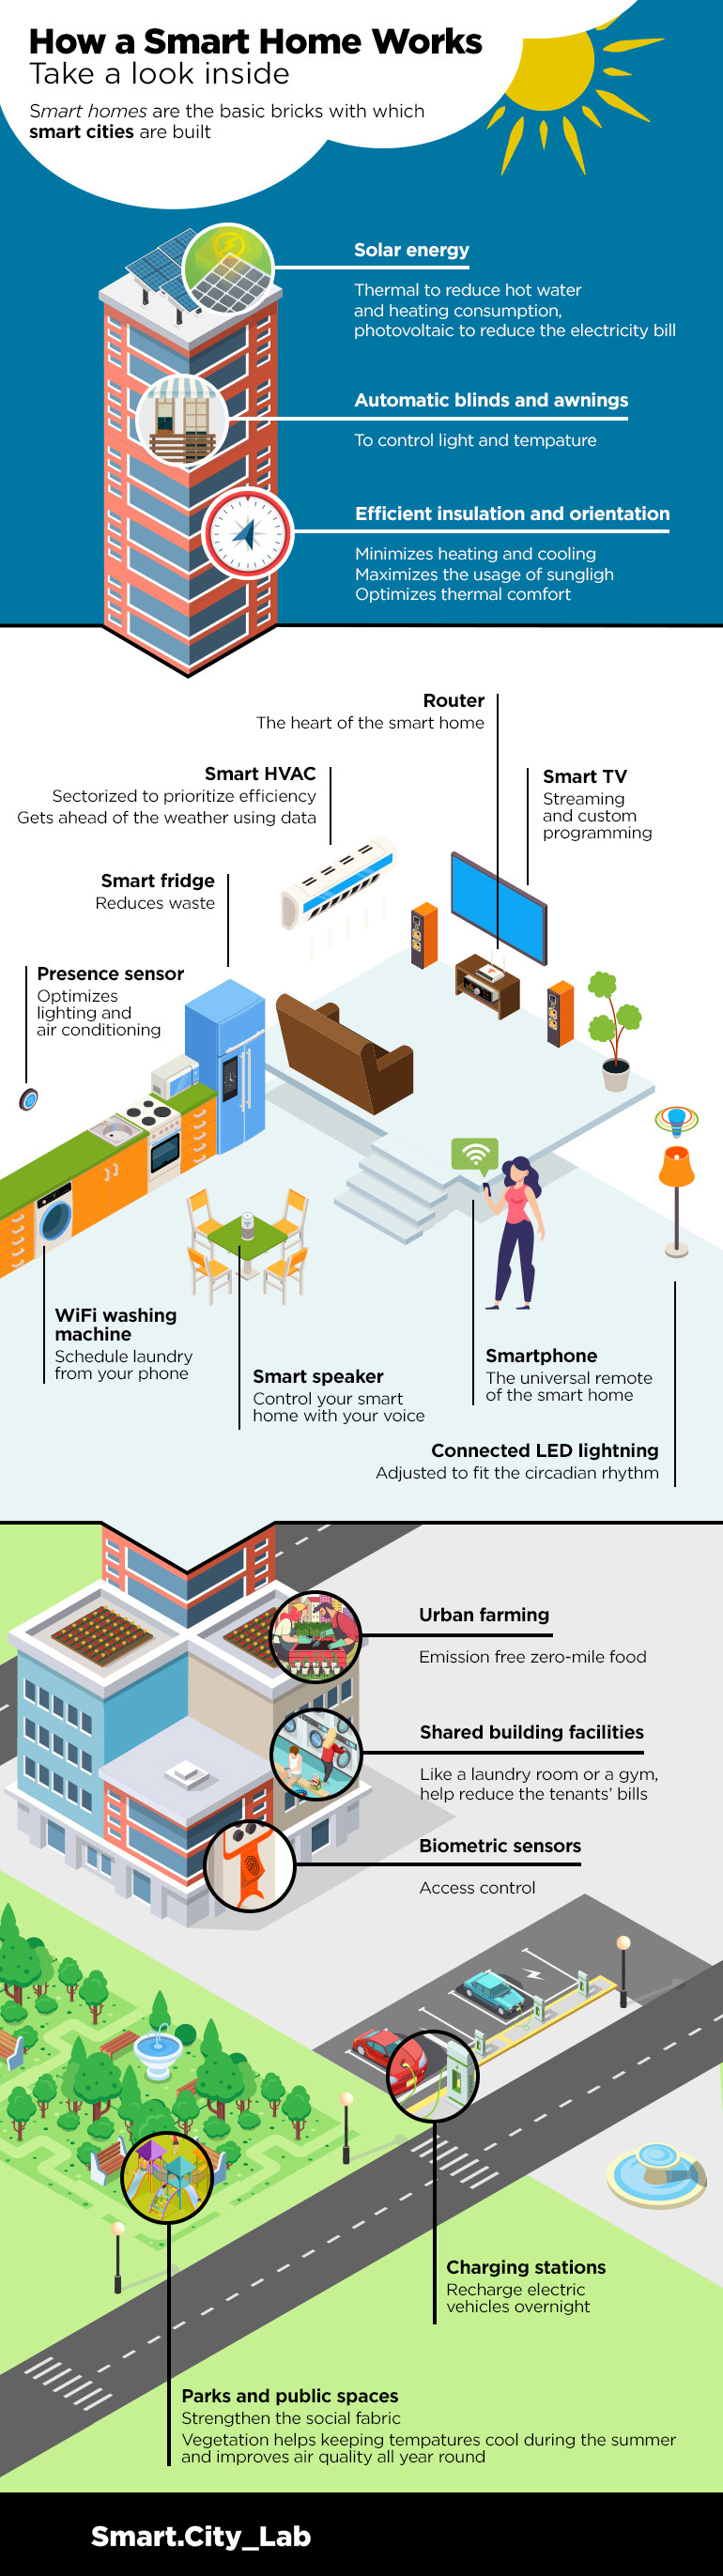 how a smart home works infographic